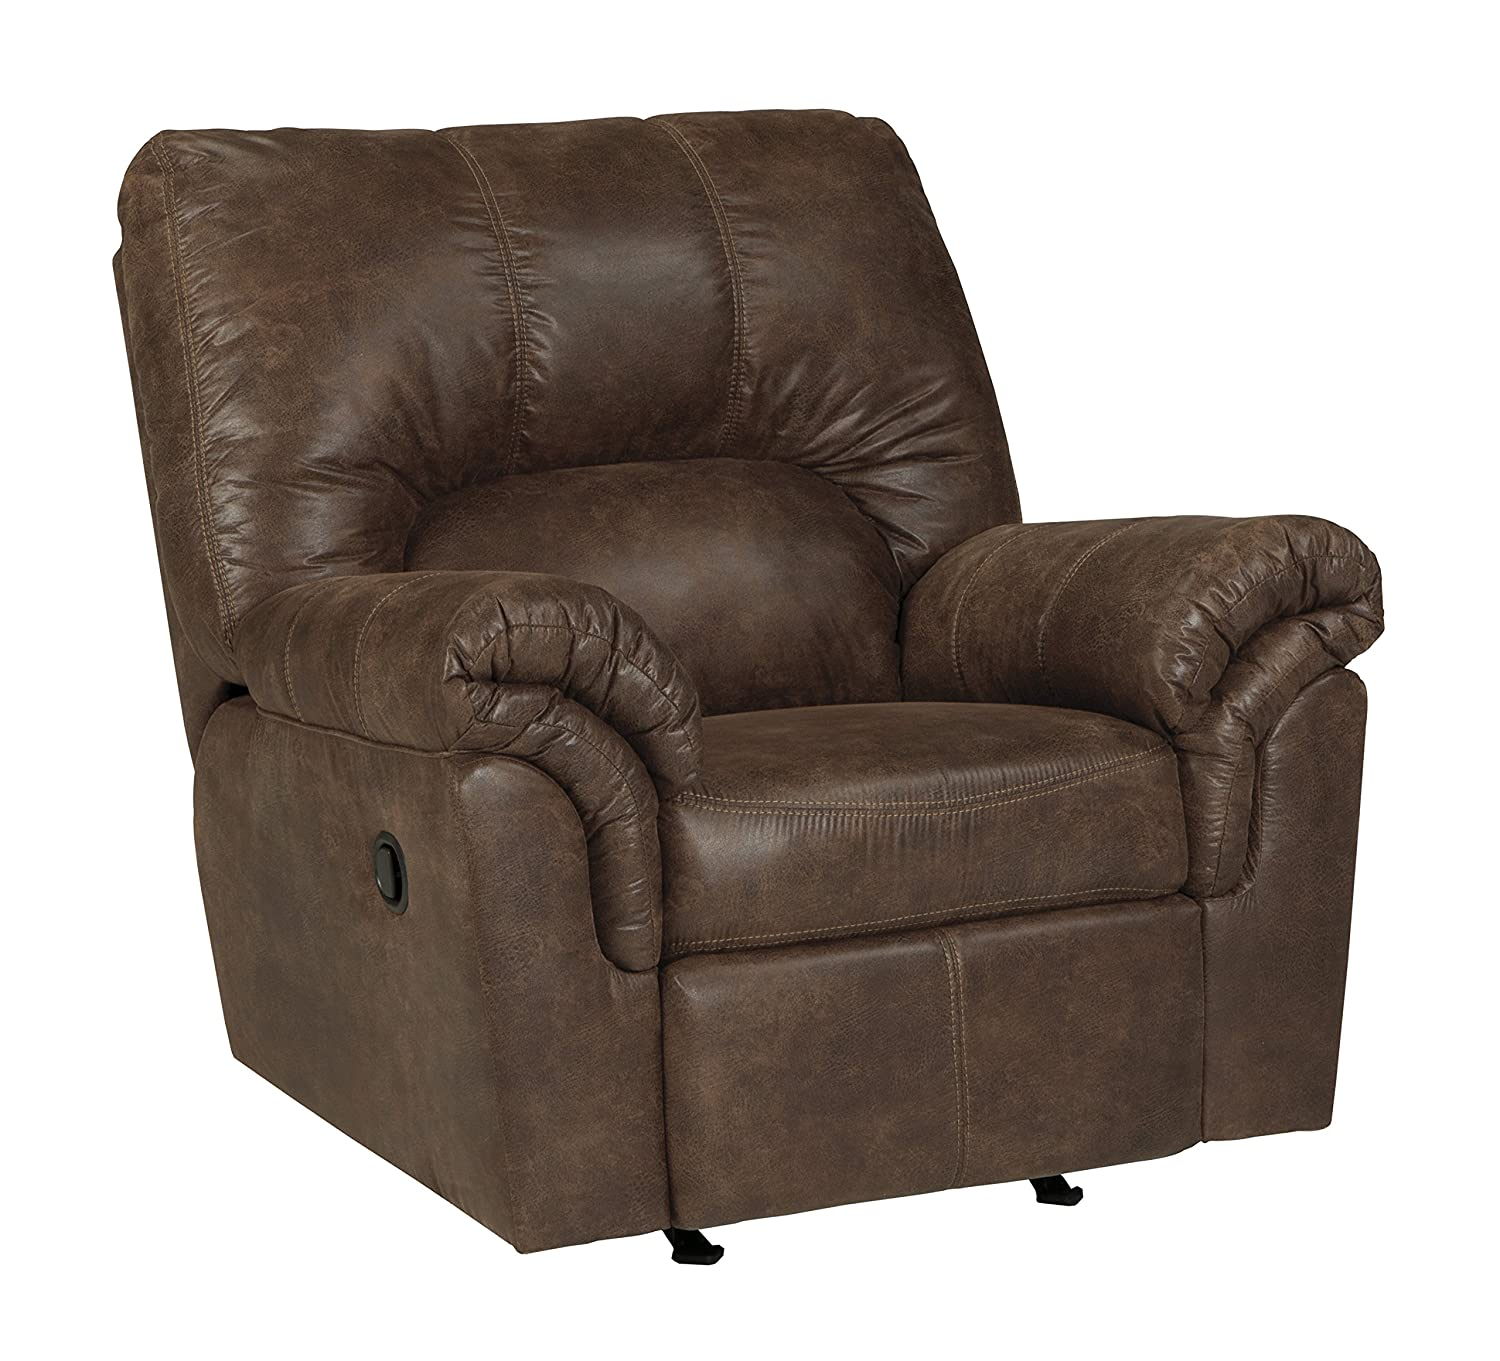 Amazon com ashley furniture signature design bladen contemporary plush upholstered rocker recliner pull tab reclining coffee brown kitchen dining